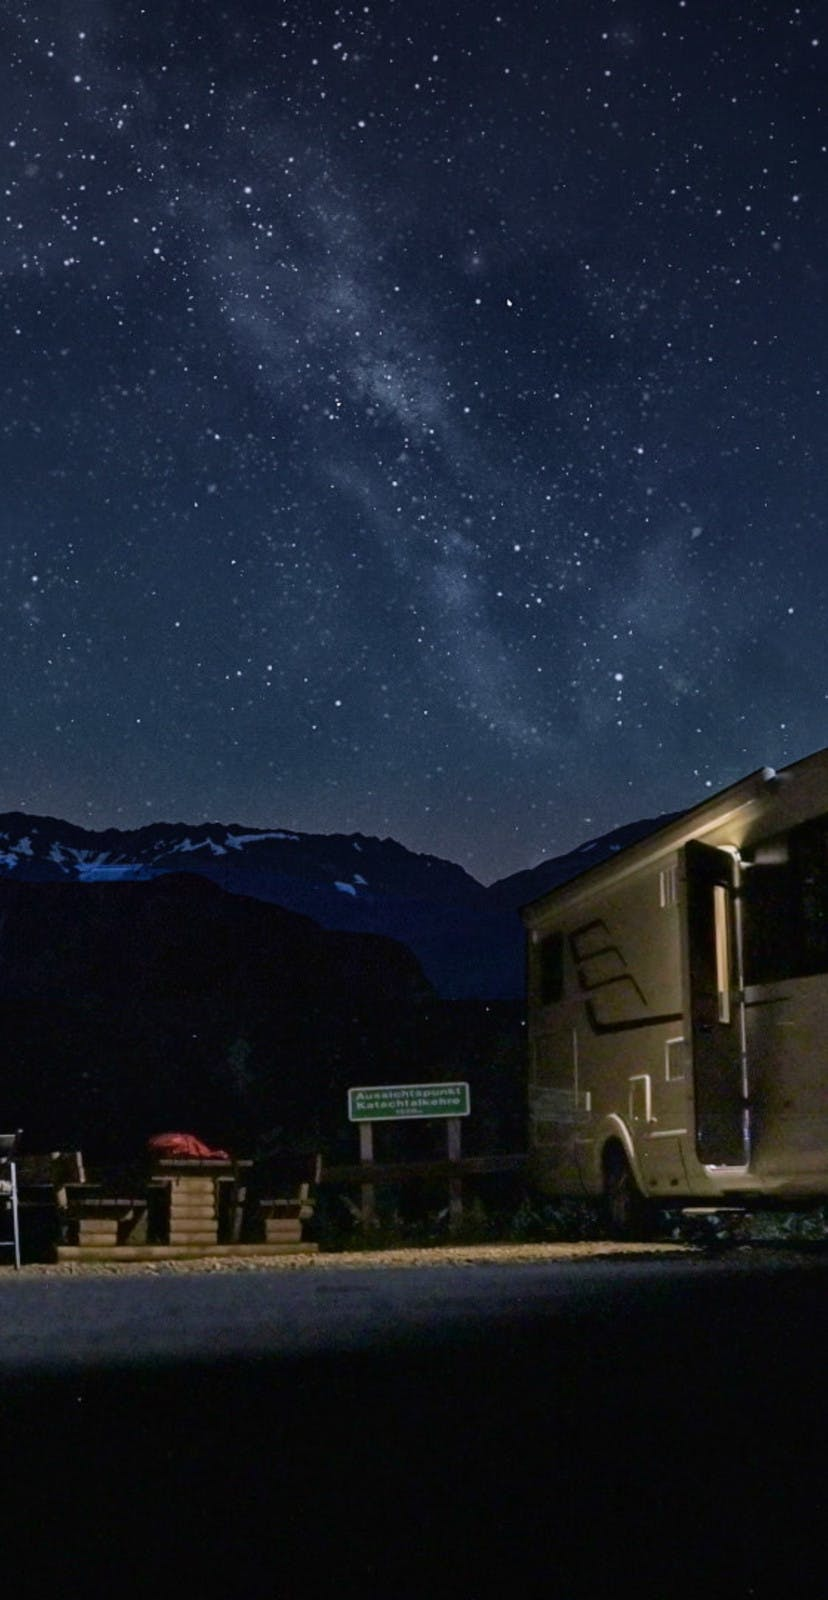 Exploring the Milky Way at night with an RV